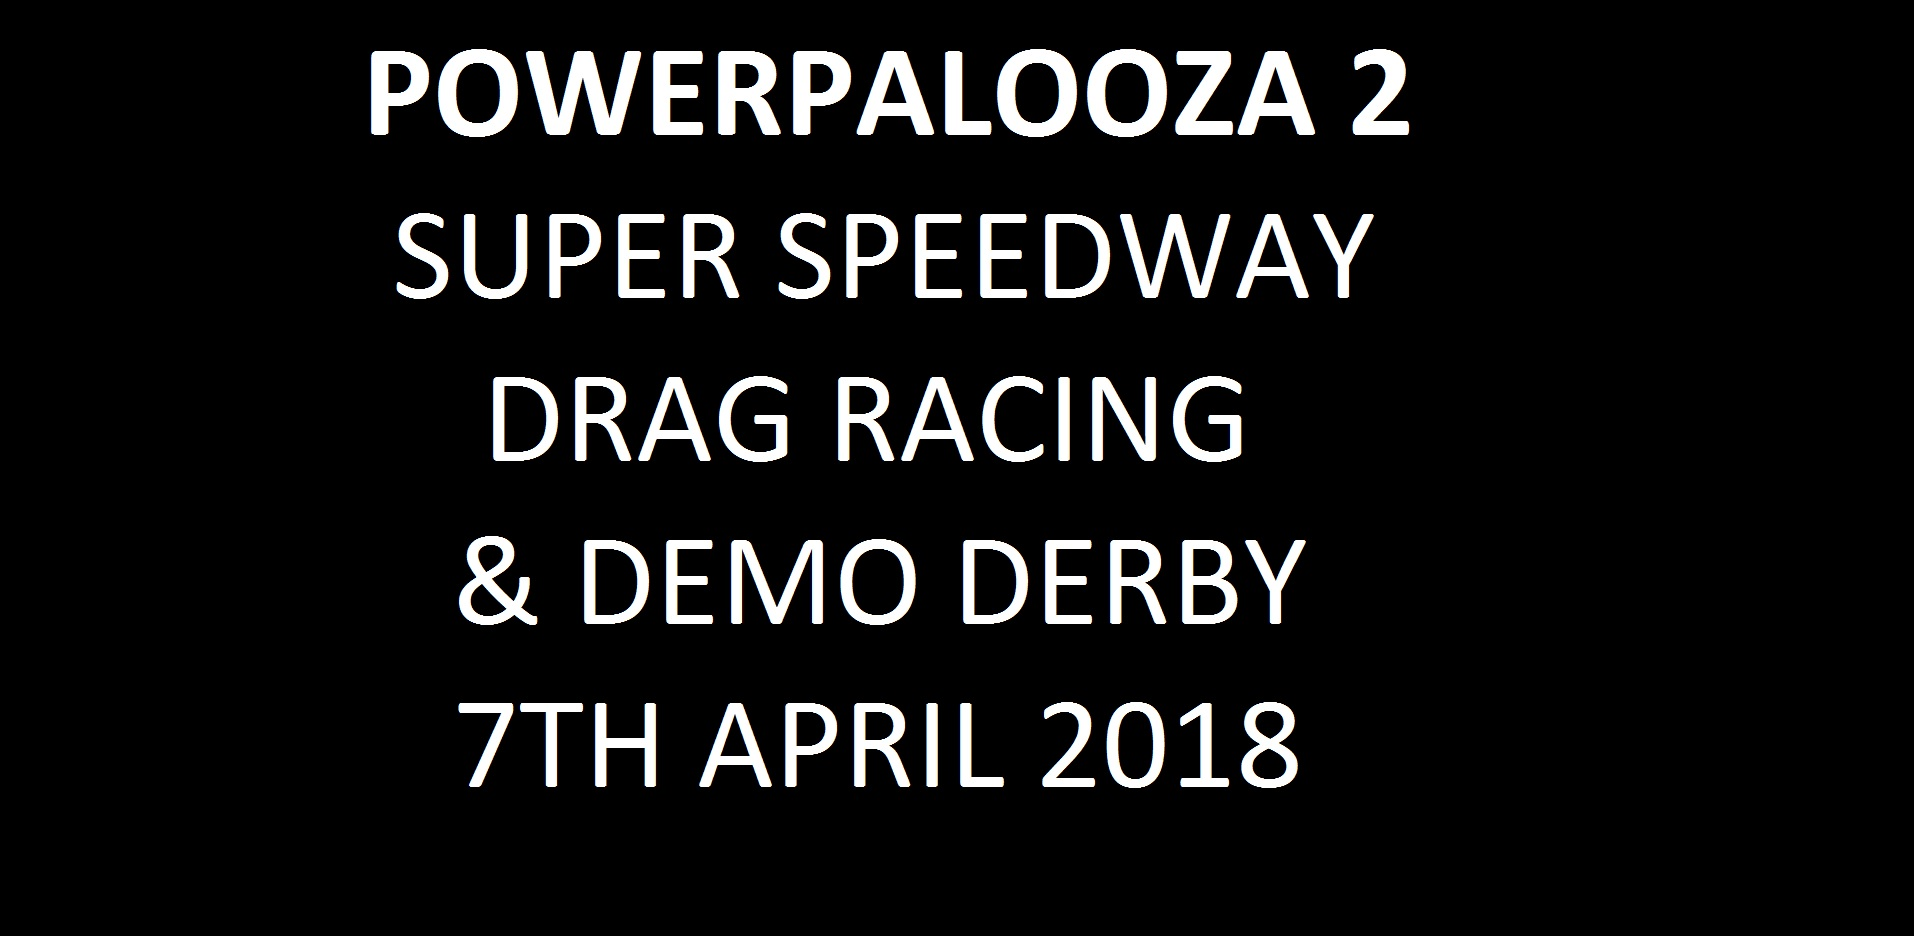 11. Powerpalooza 2 - 7th April 2018 Image